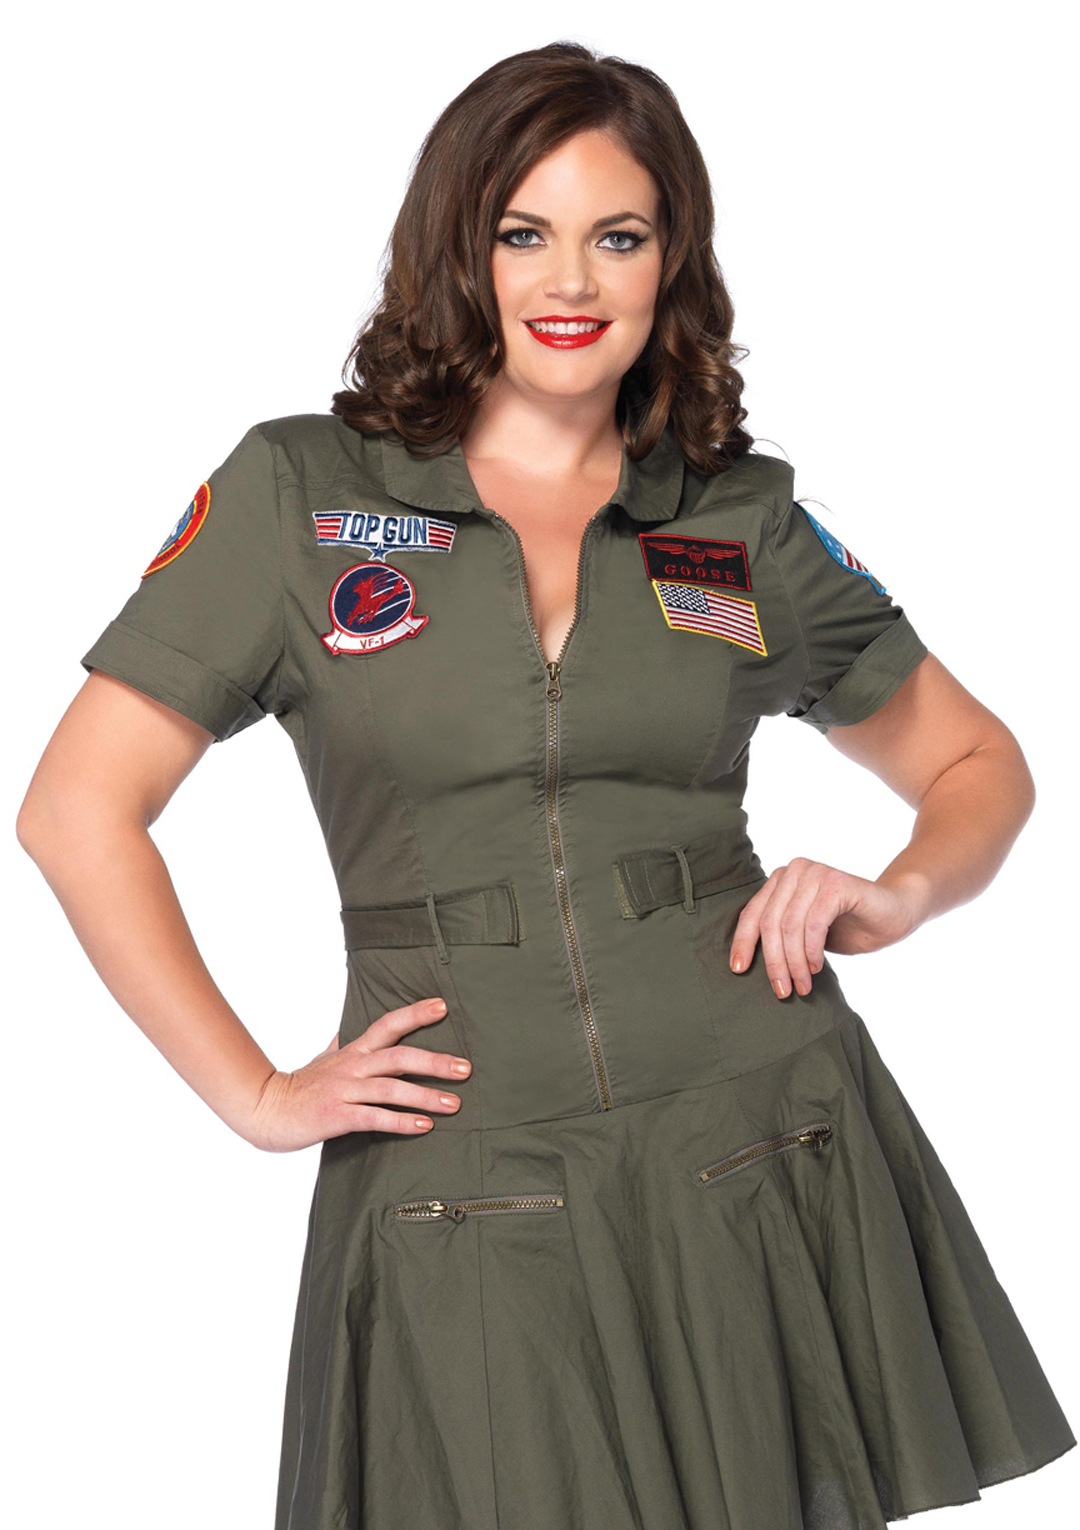 top gun flight dress plus size women's halloween costume 3x4x | ebay